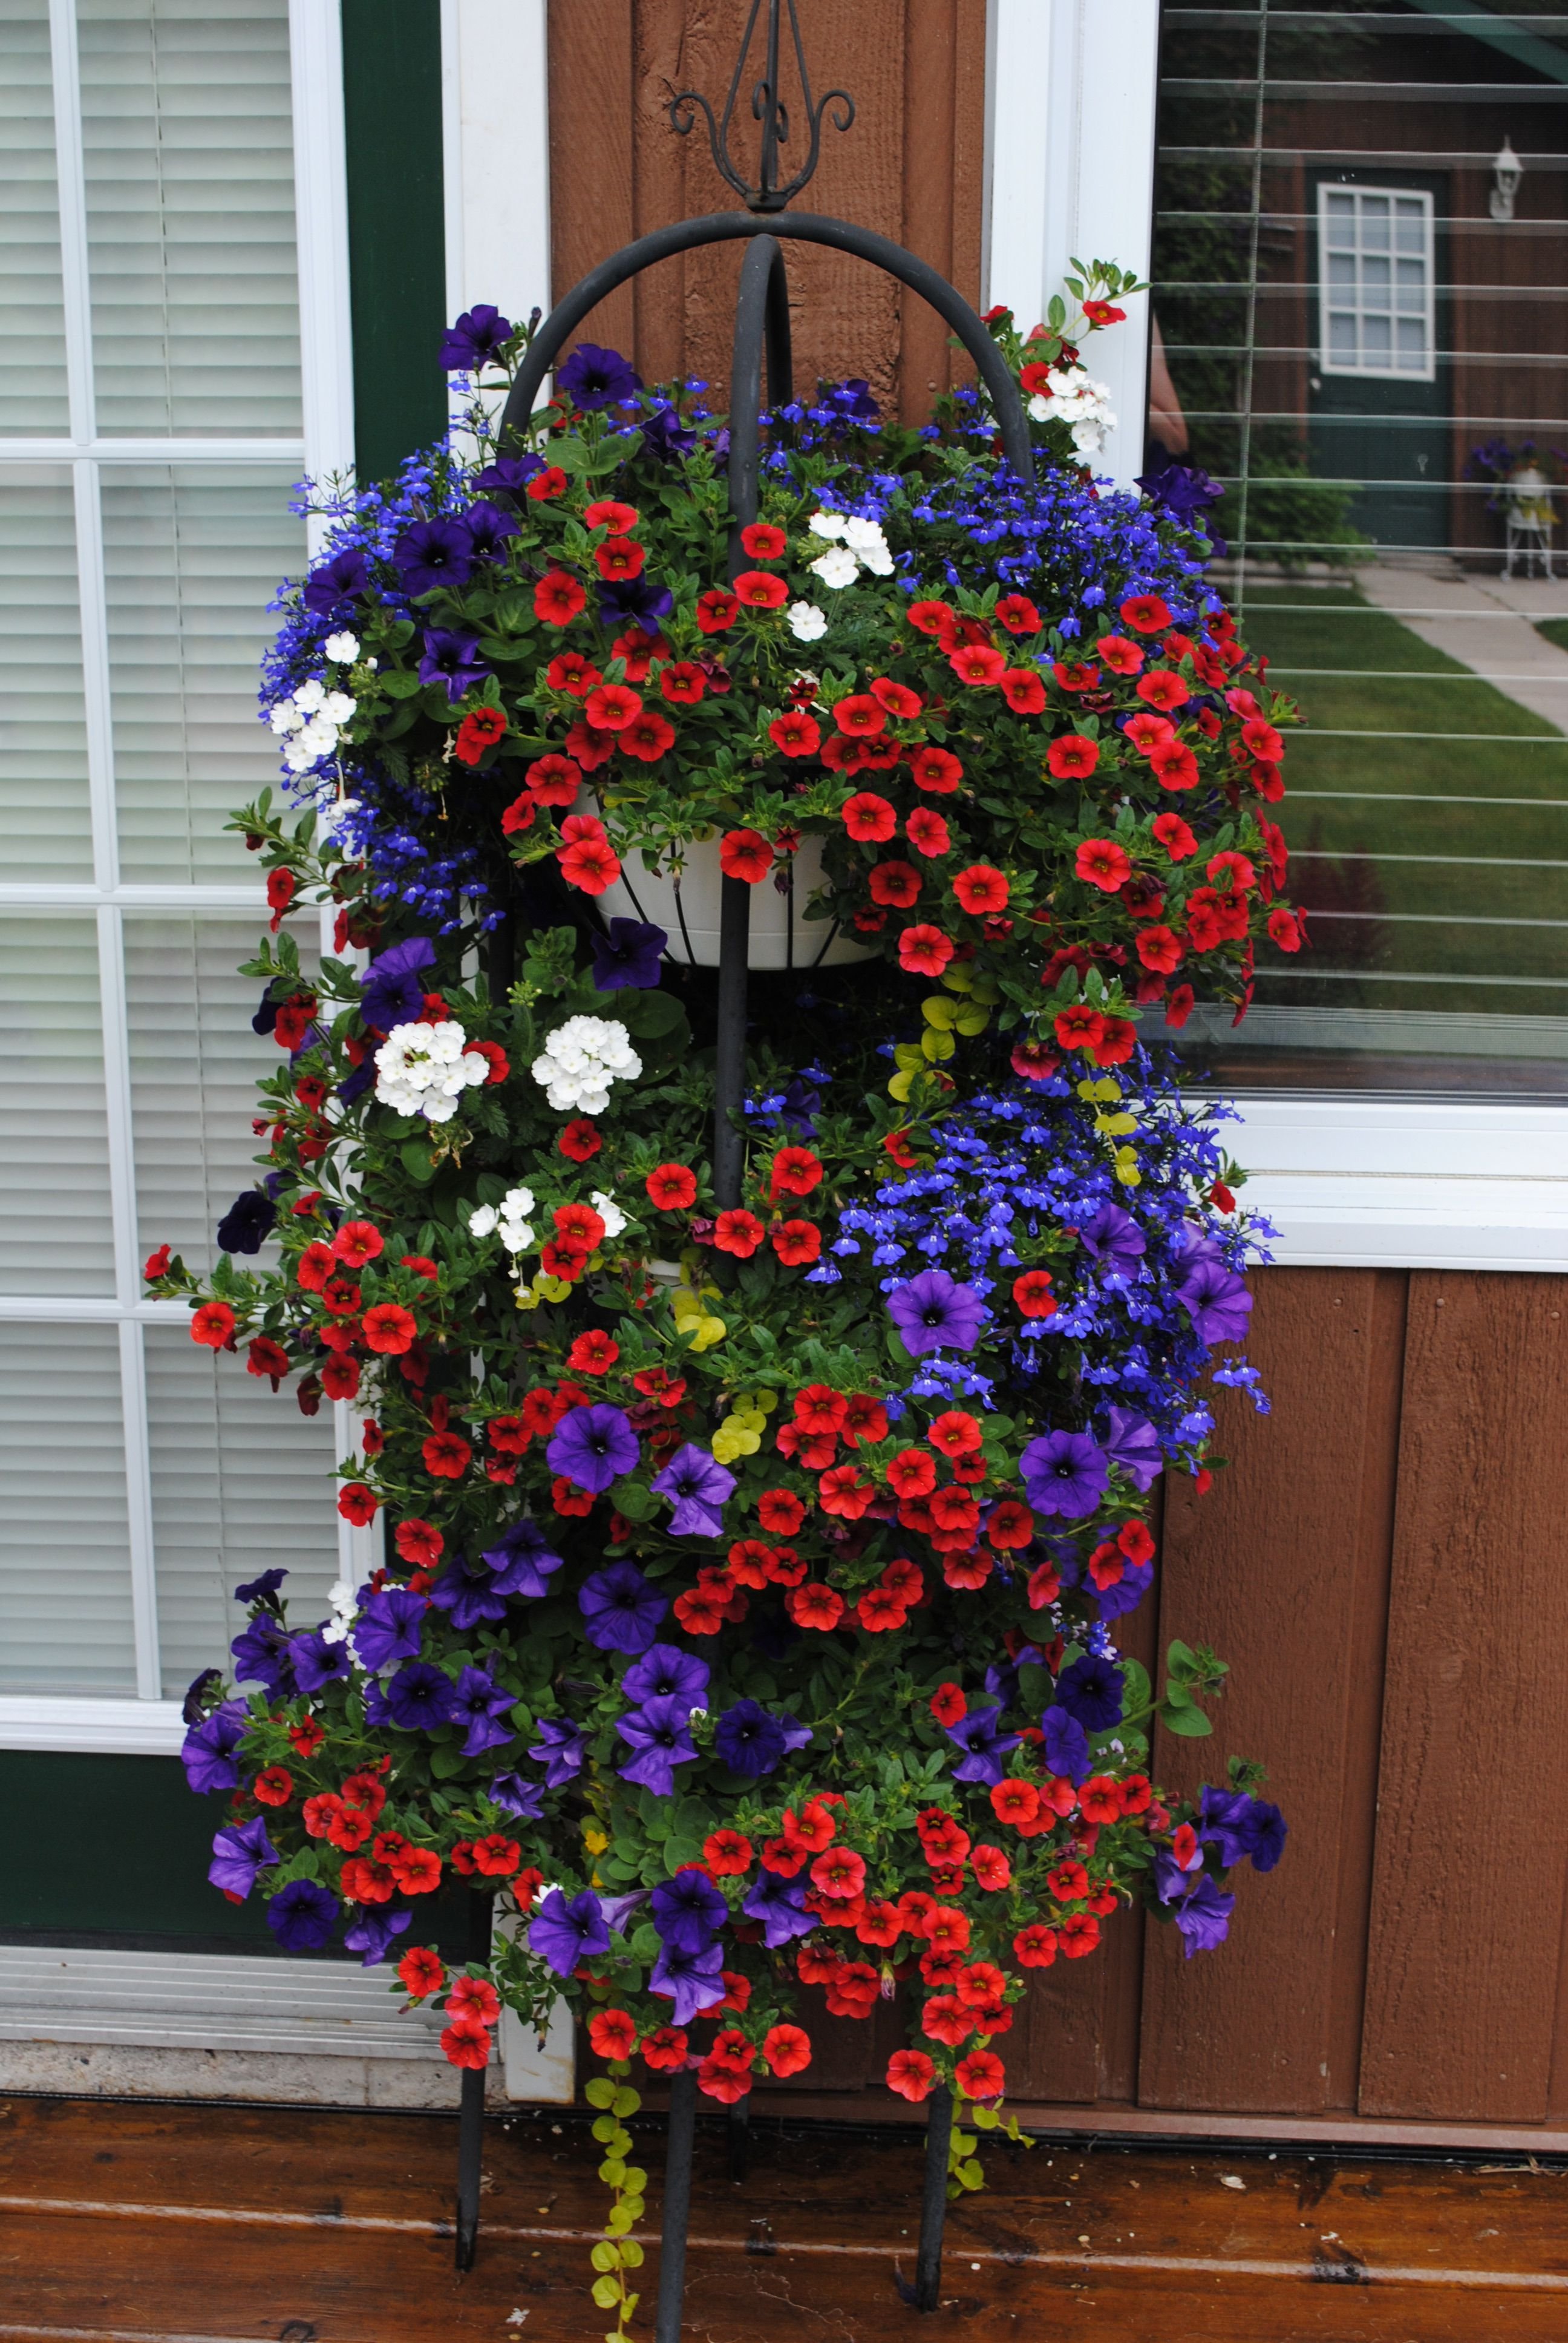 Best Plants For Hanging Baskets   Colorful flowers